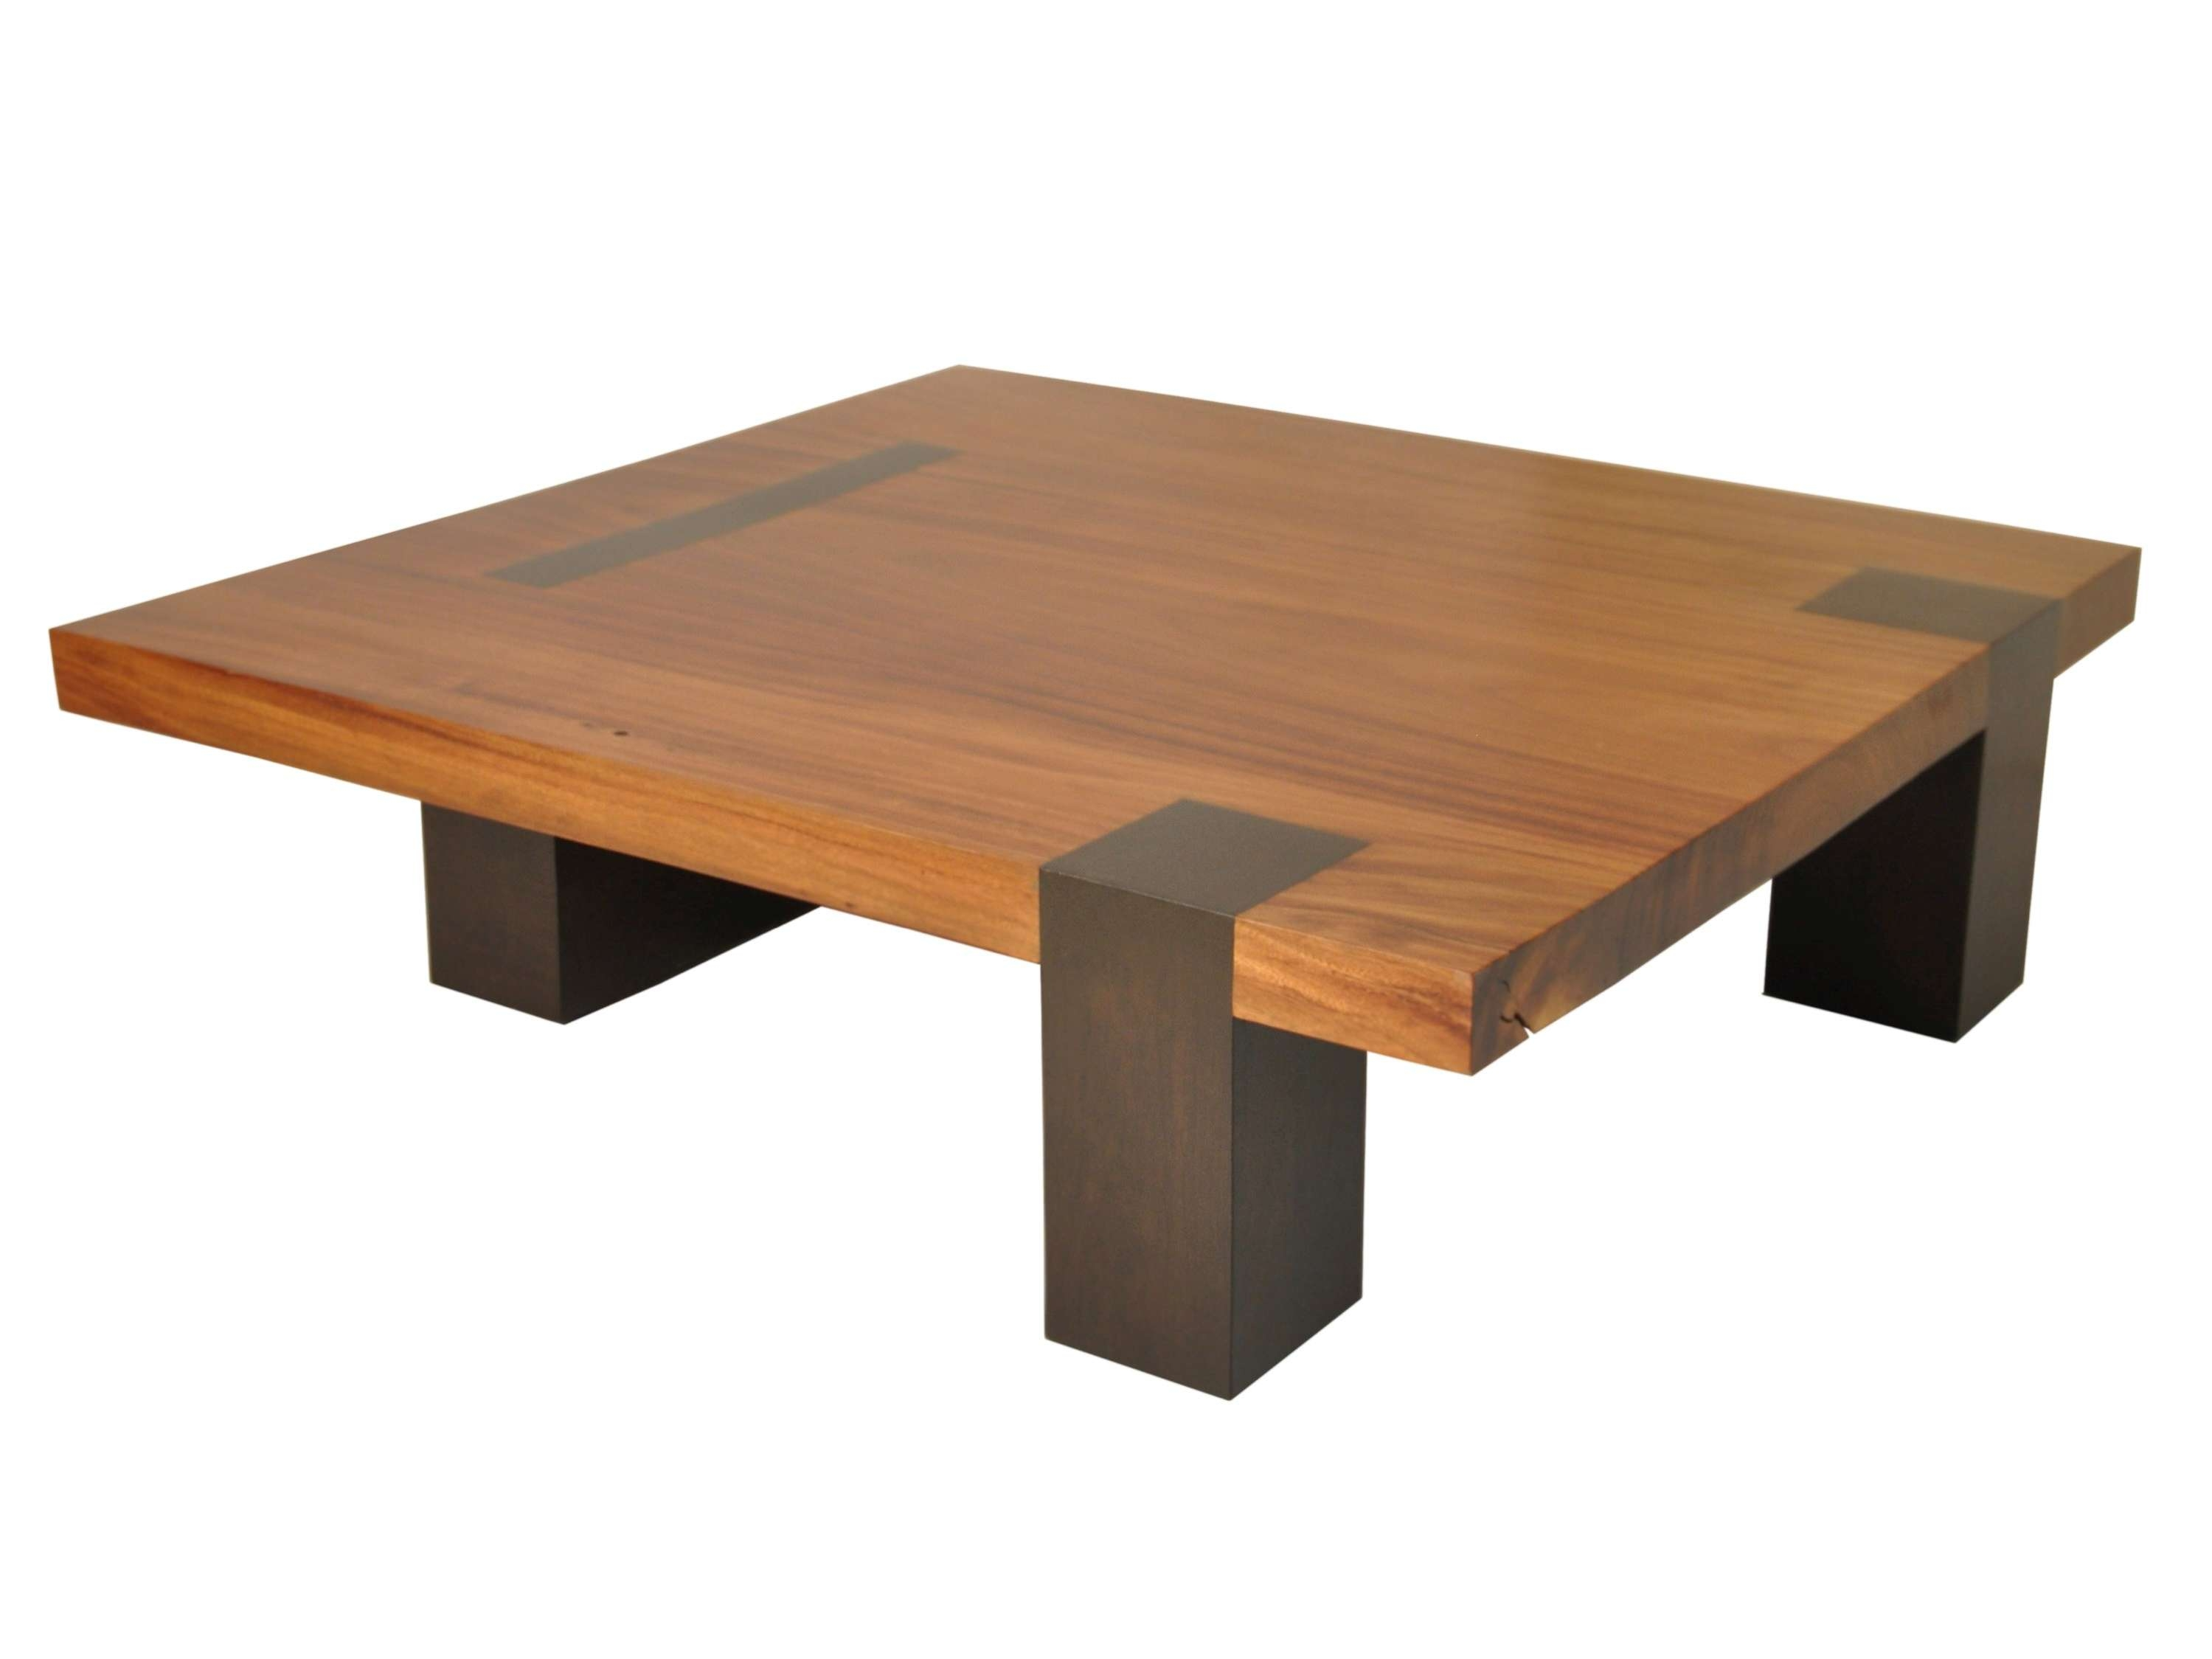 Furniture Excellent Small Coffee Tables With Storage Ideas High Within Most Current Cheap Coffee Tables With Storage (View 14 of 20)